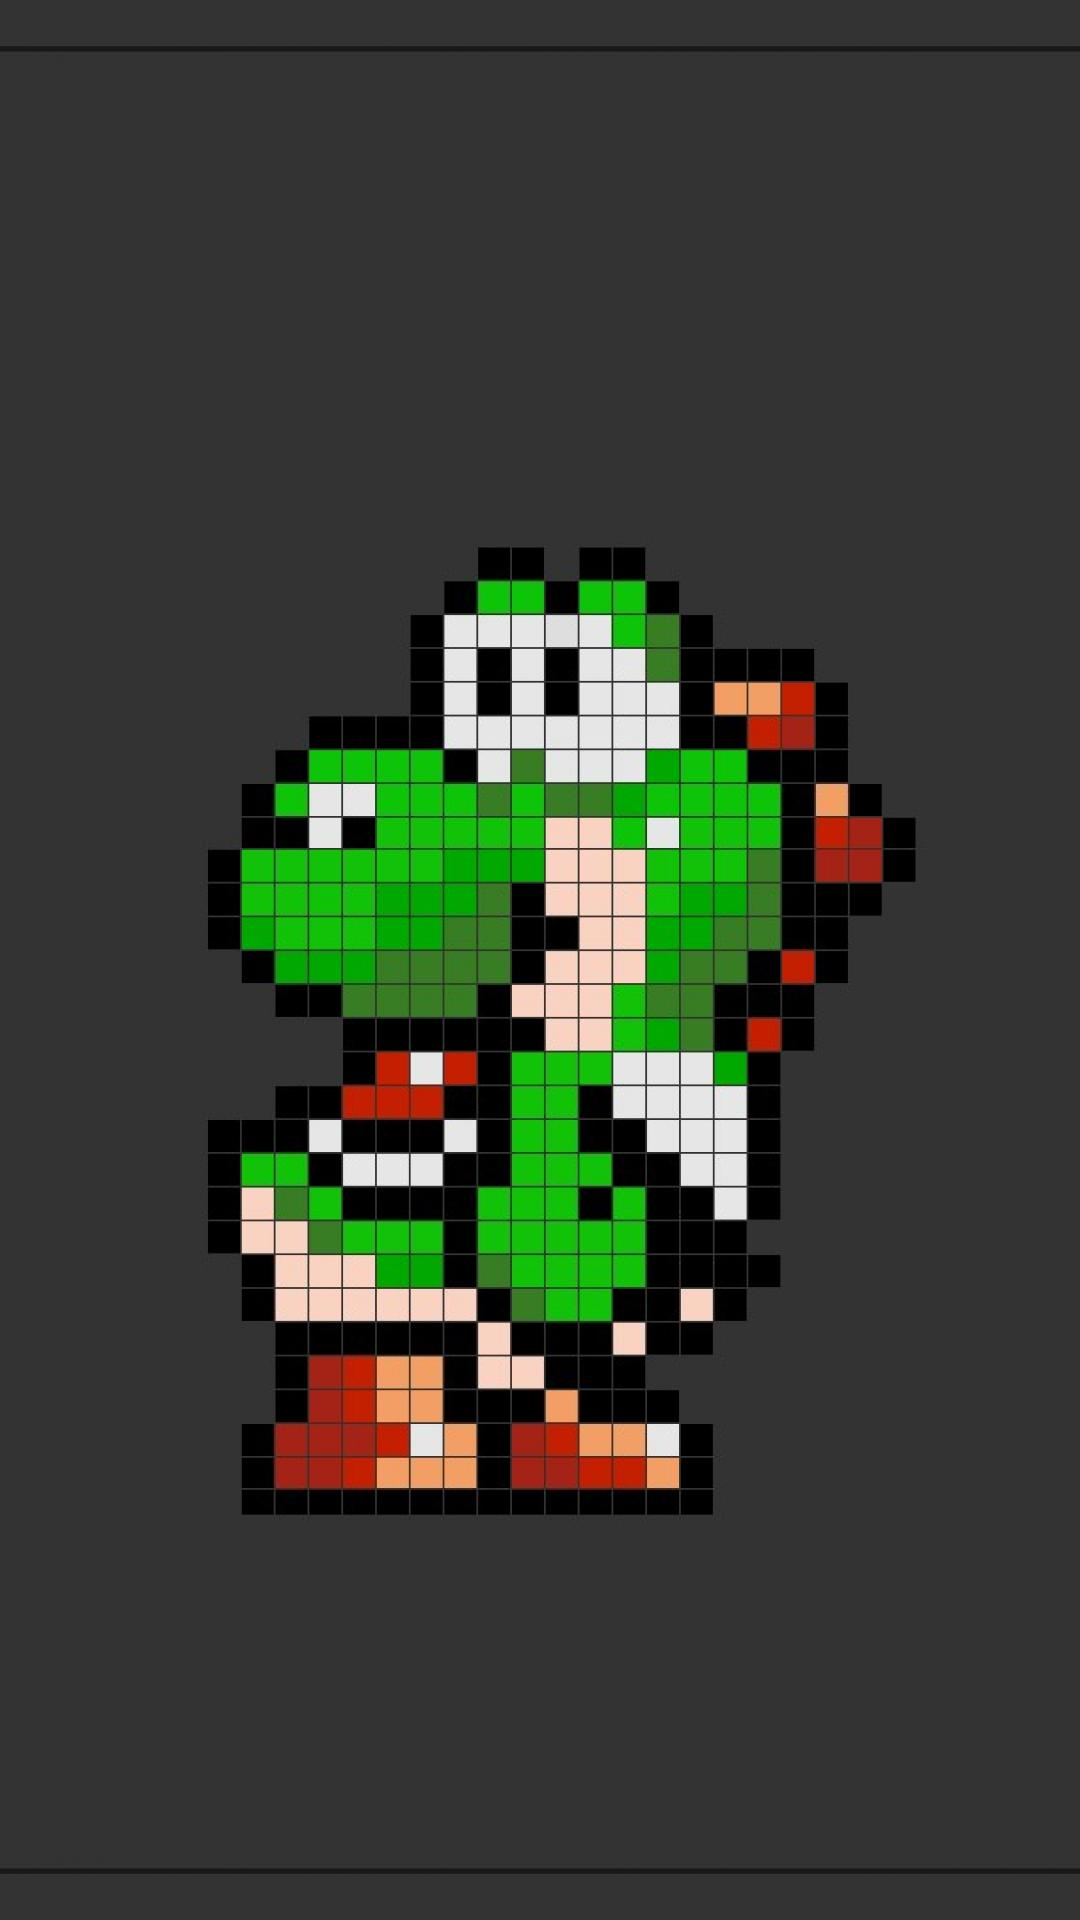 Super Mario Wallpaper Iphone 5 8 Bit Video Game Wallpapers For Iphone And Ipad